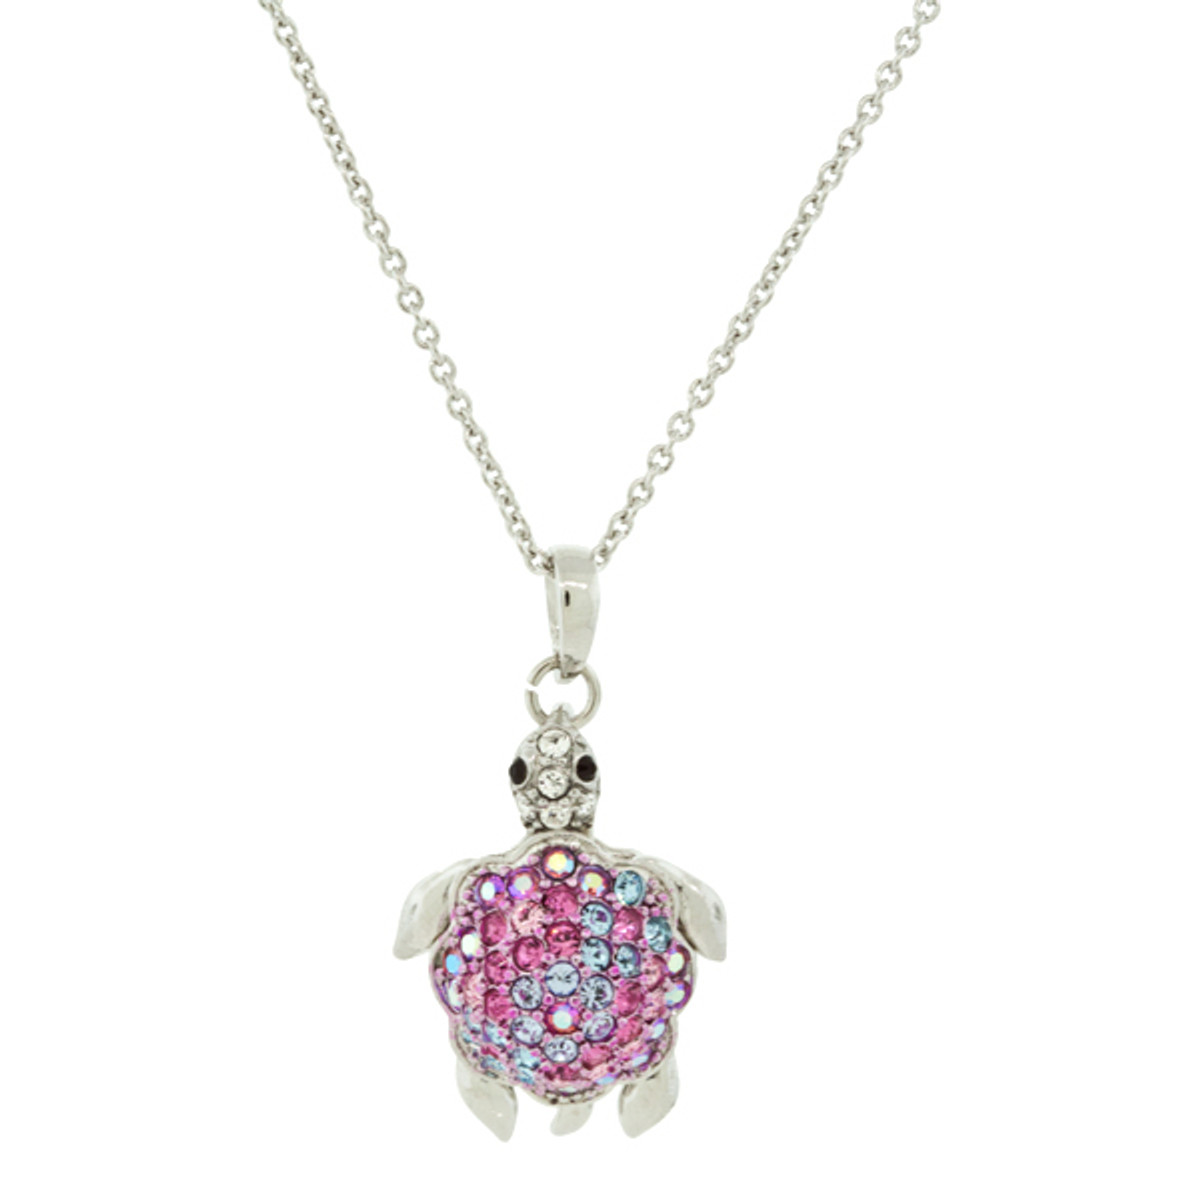 Andrew Hamilton Crawford Jewelry Turtle Necklace Silver Pink Necklace